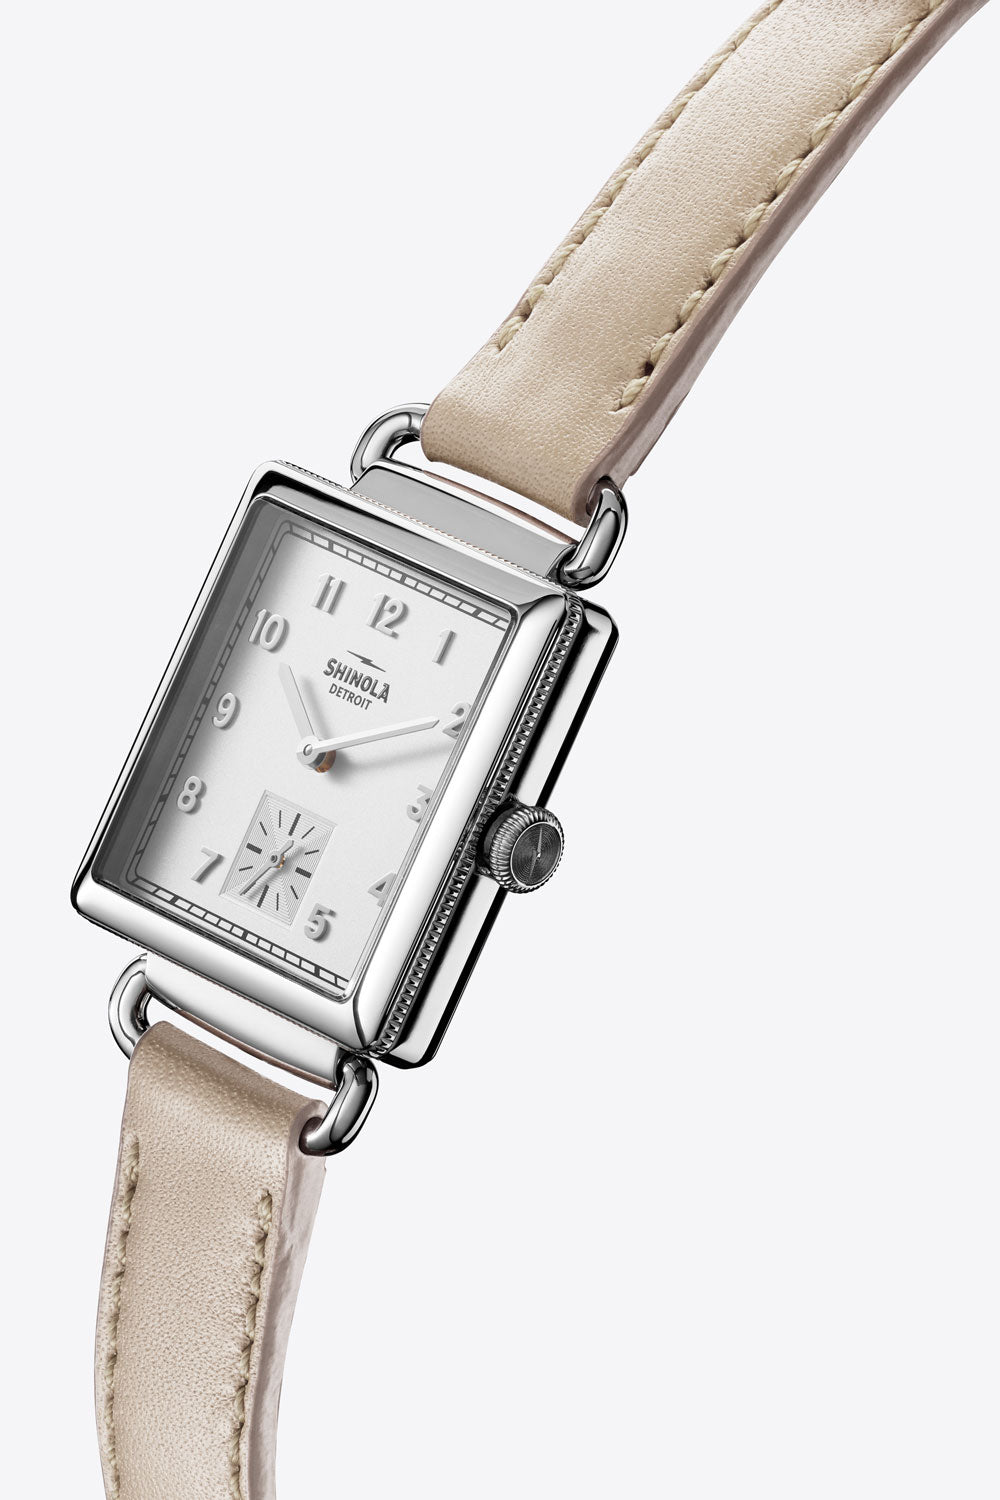 Cass Square 28mm Sub Second Watch in Milky White/Bone